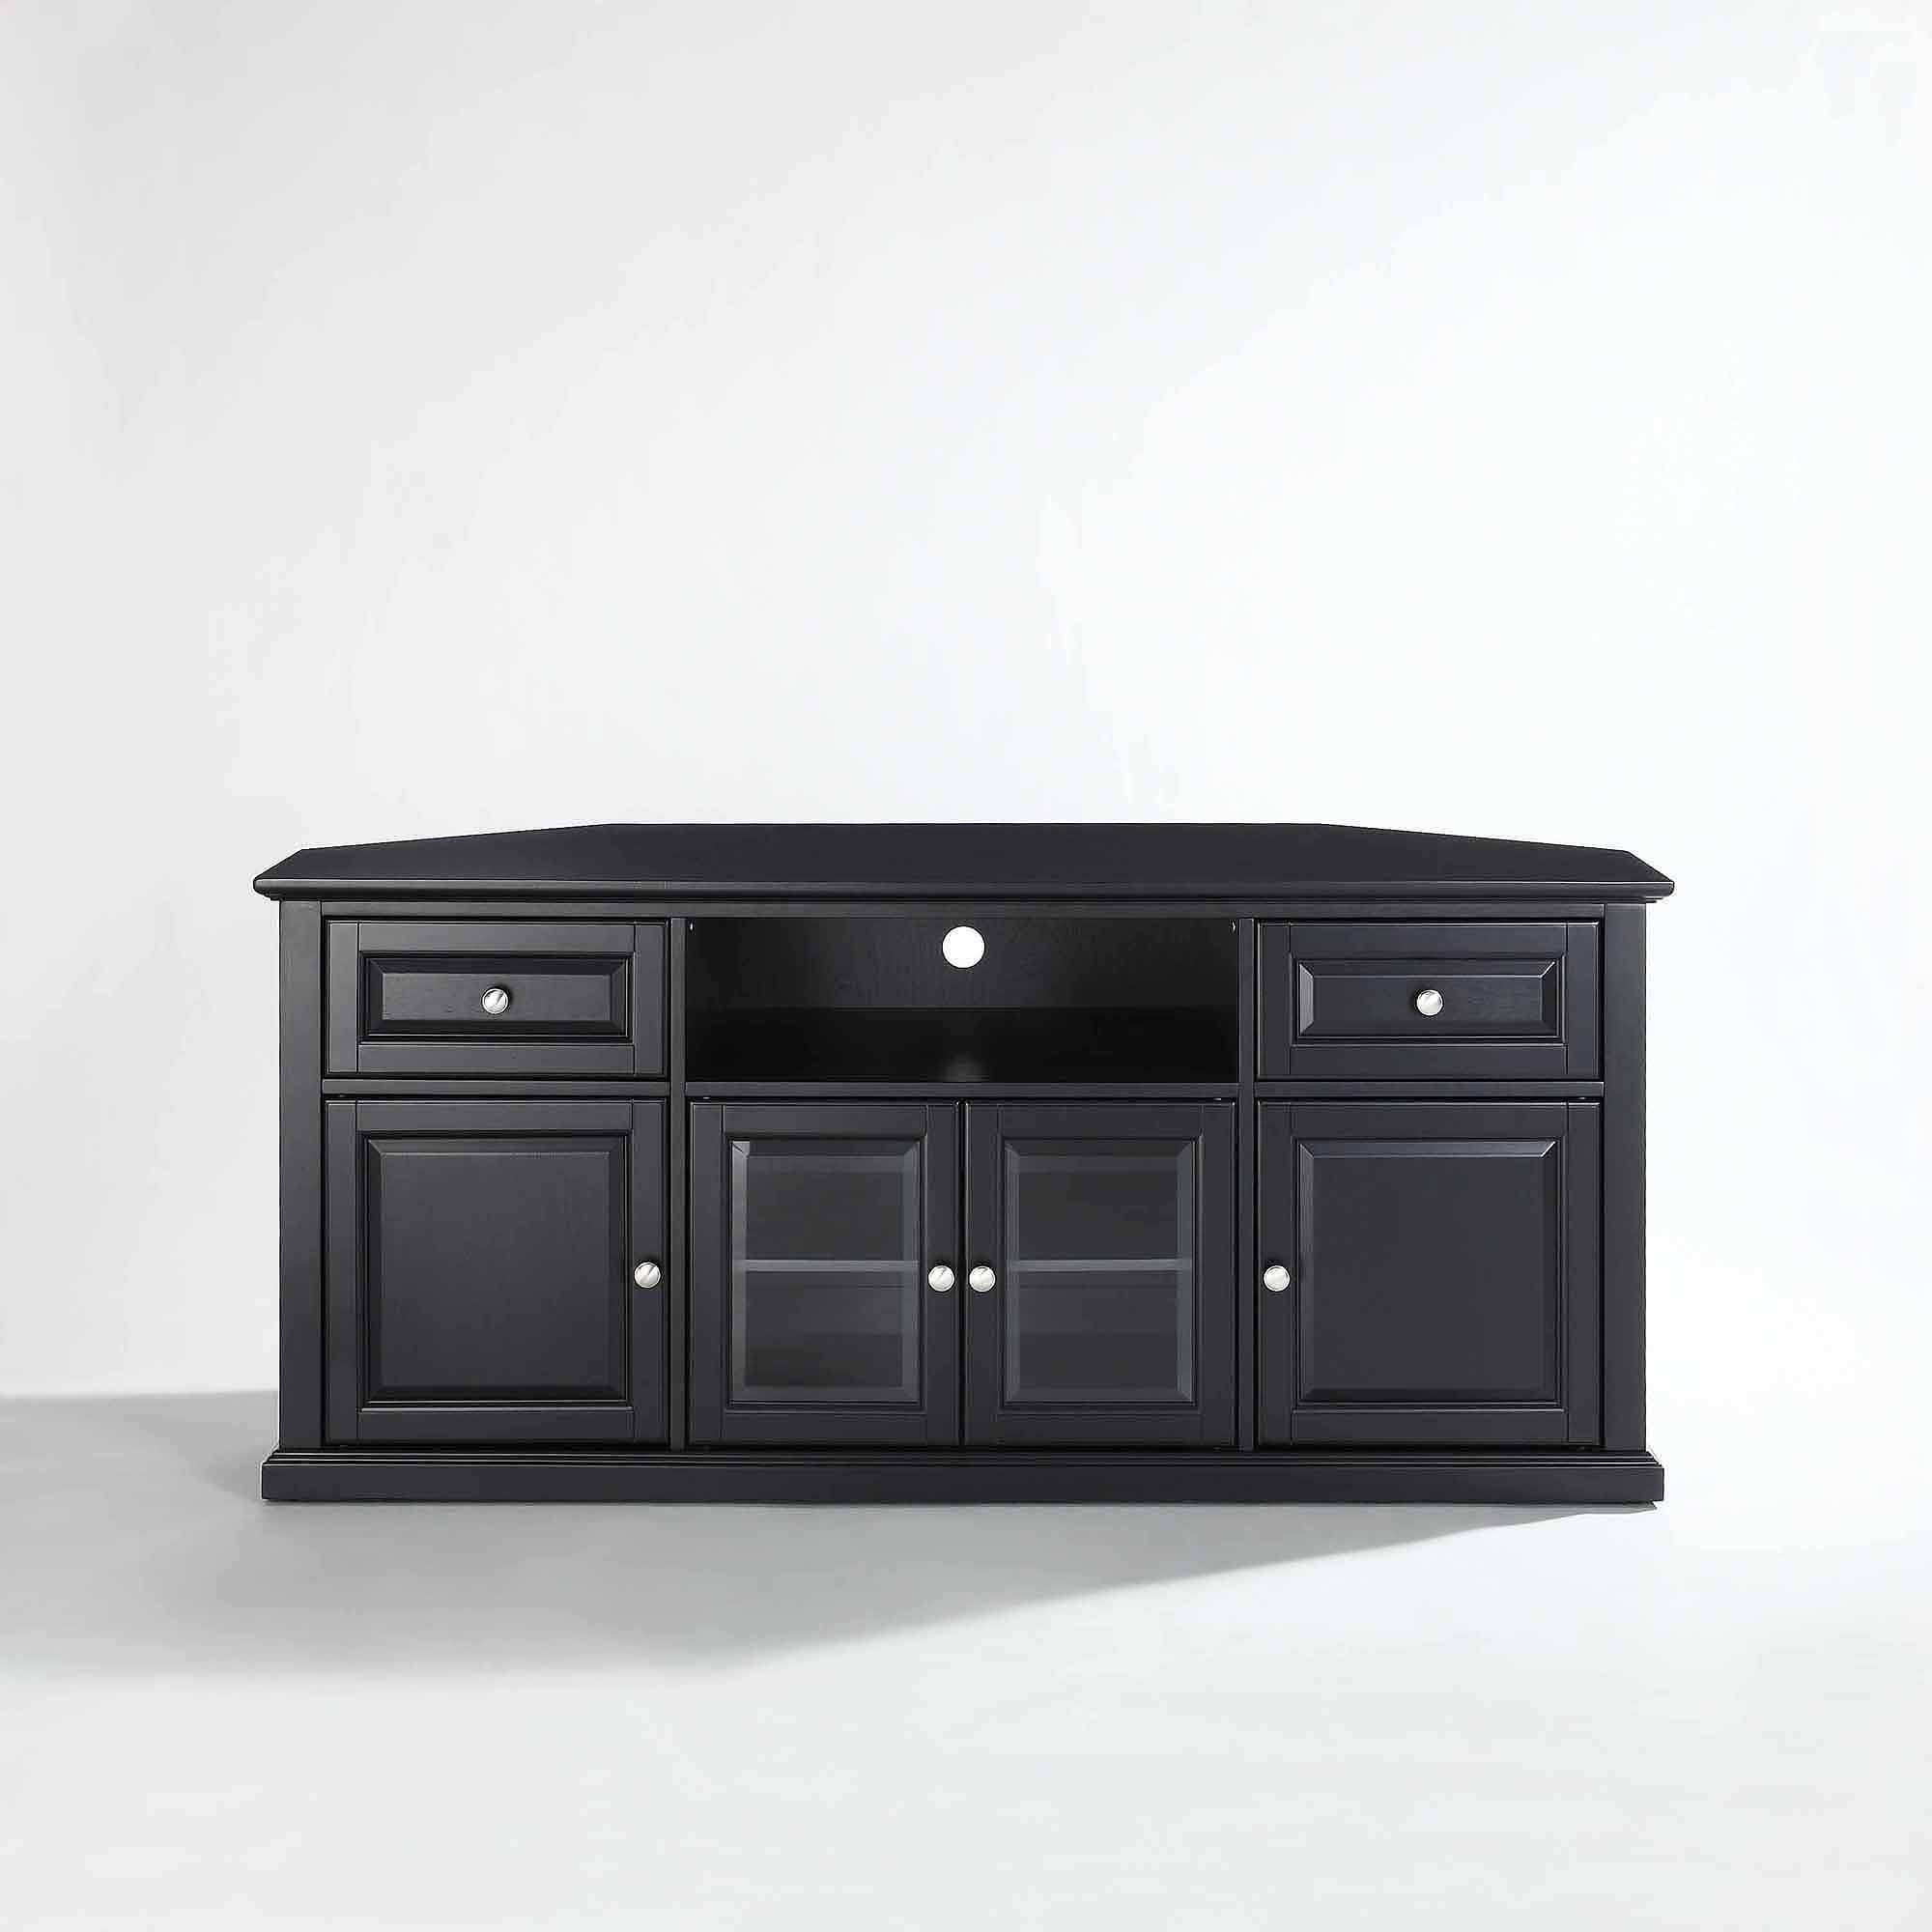 Luxury Tv Stands For 60 Inch Tv 84 About Remodel Interior Decor Throughout 84 Inch Tv Stands (View 7 of 15)